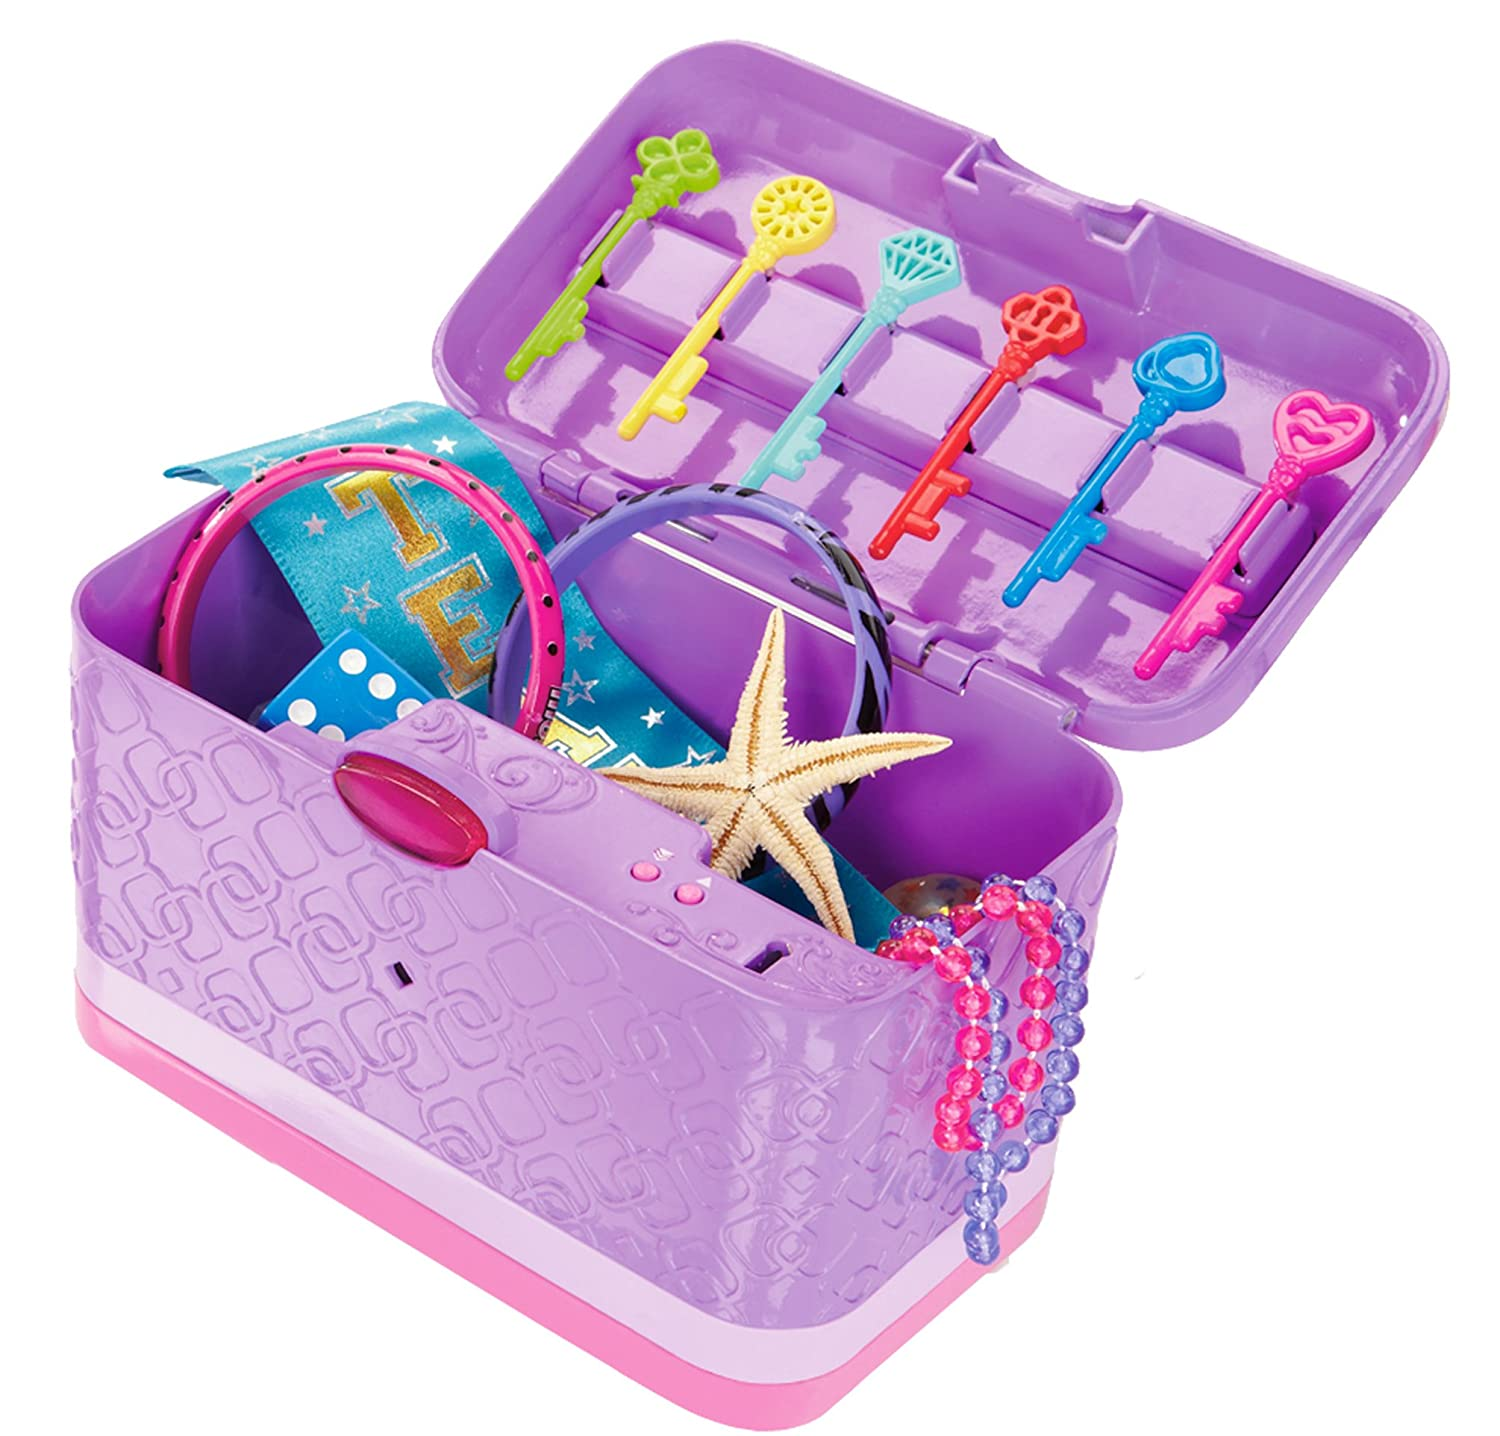 Cool Toys For Girls Age 8 11 : Password journal voice activated keepsake box